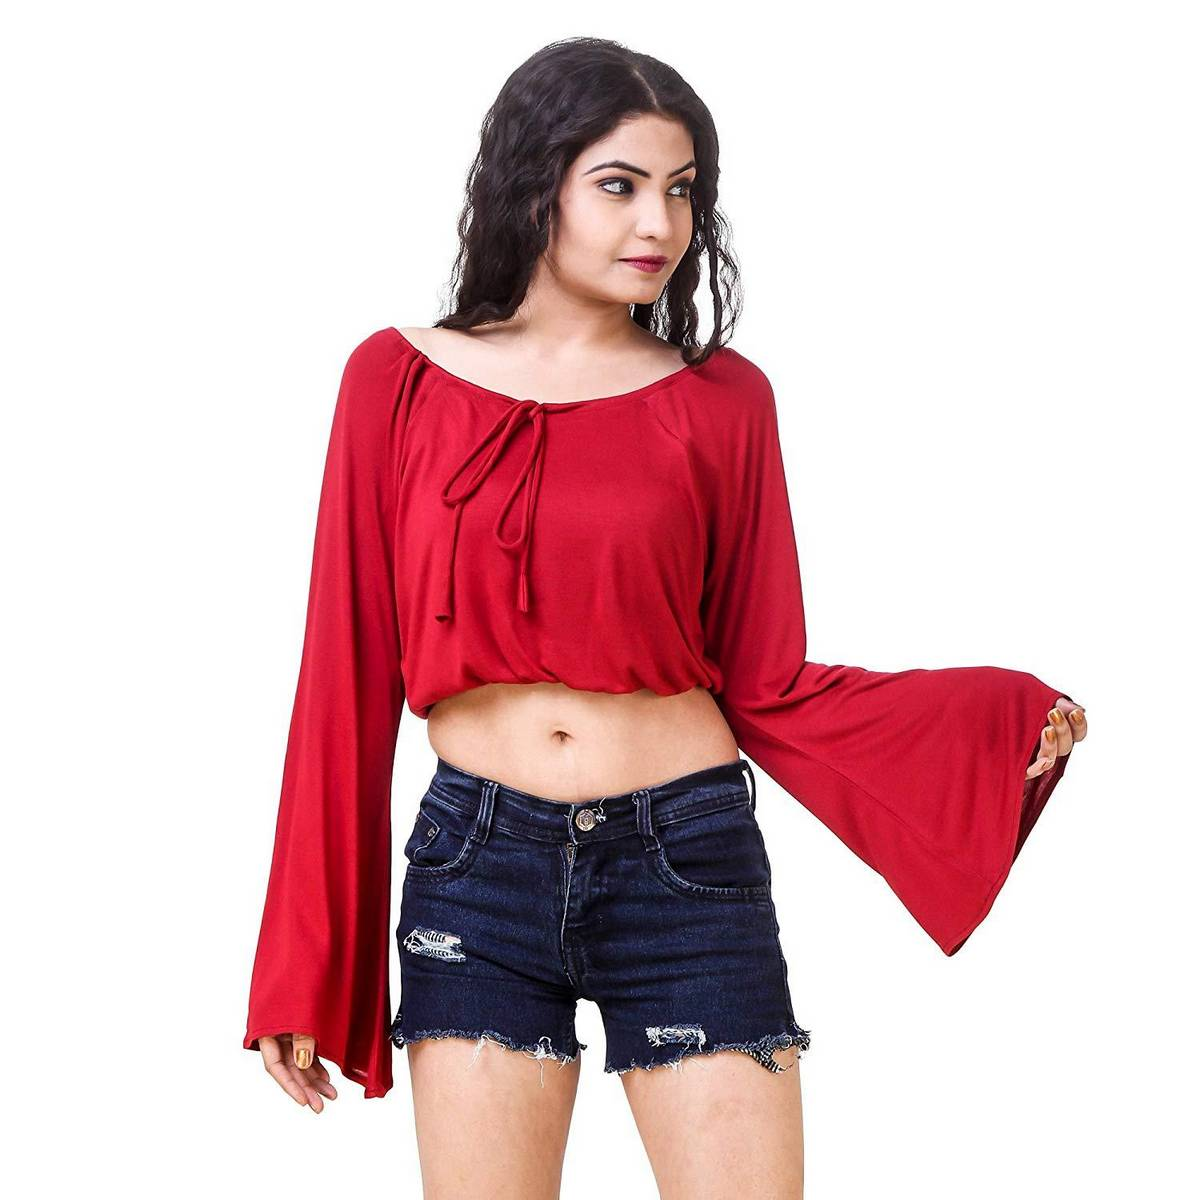 Designer Red Cotton Crop Party Wear Western Wear Stylish Top Shirt Blouse Tunic For Women